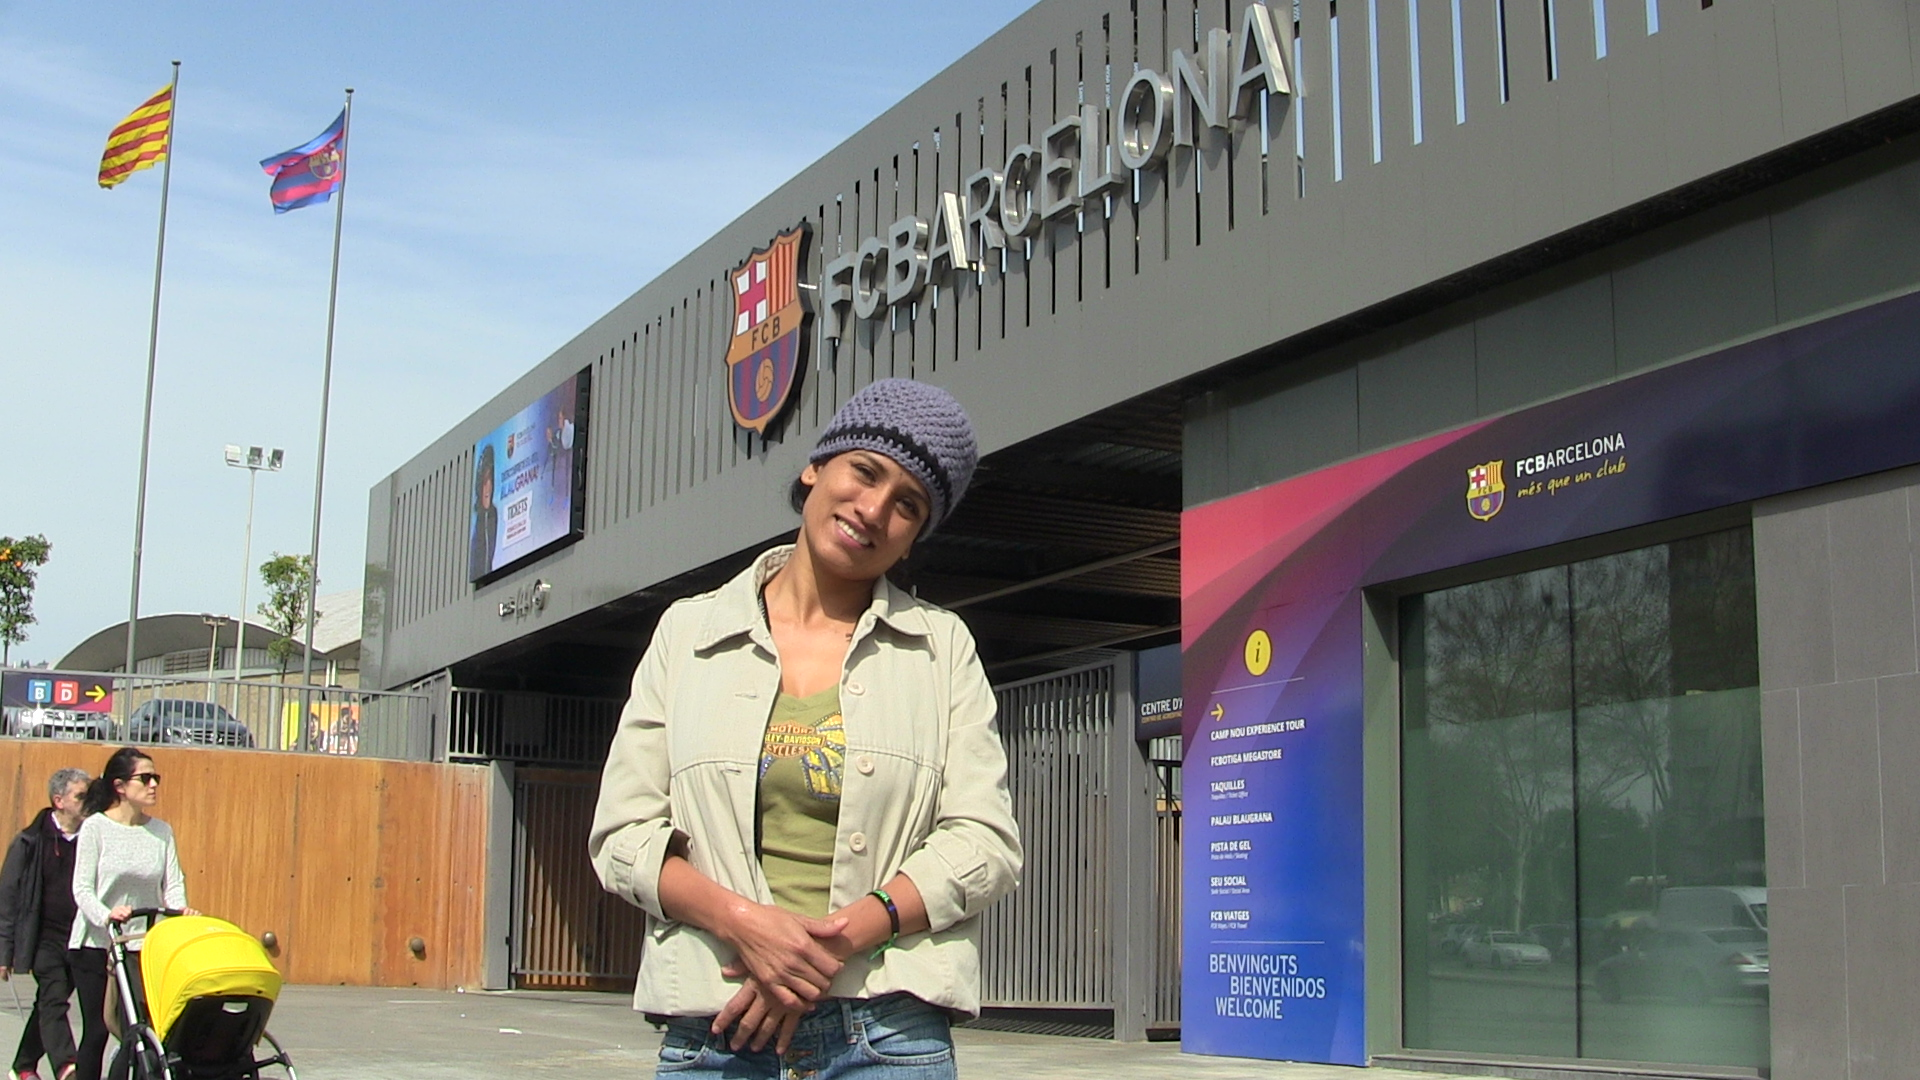 Cris at the Barcelona Football Club Stadium